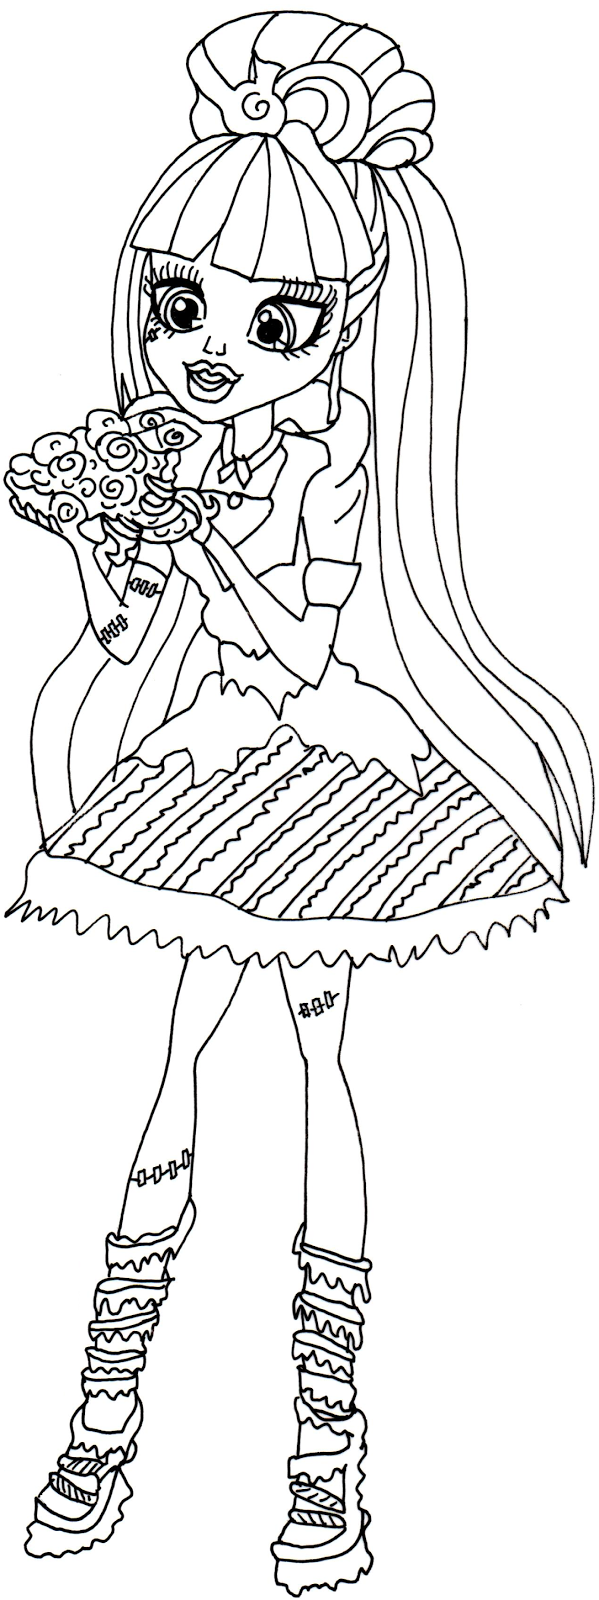 Free Printable Monster High Frankie Stein Sweet Screams Coloring Page Click Here To Print Shop Related Products Ads By Amazon